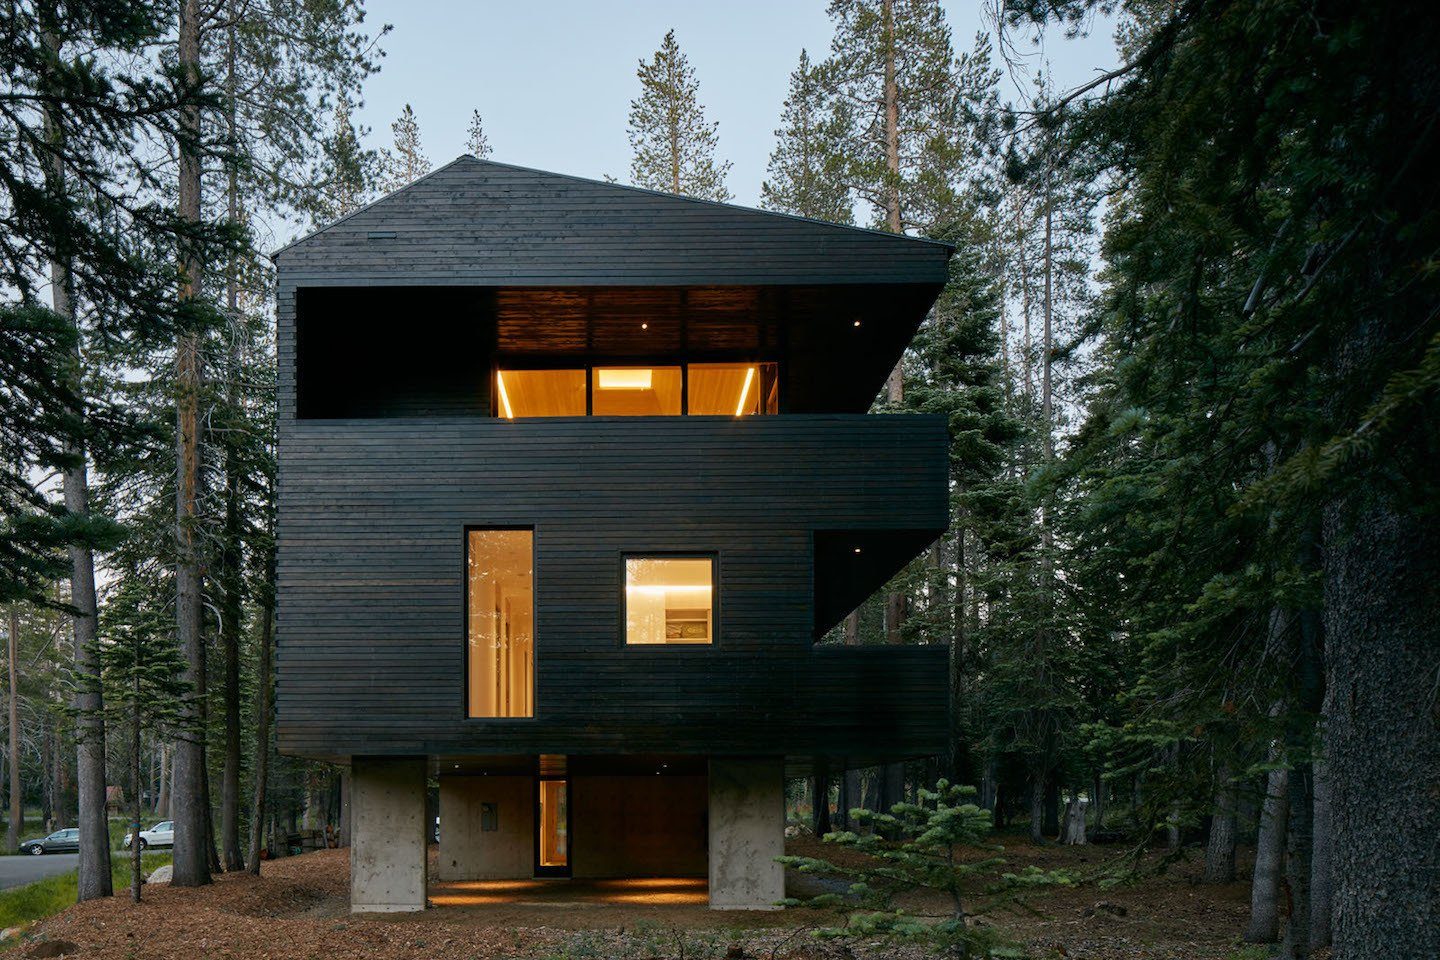 """Taking inspiration from Arlberg Valley, Austria to classic Nordic materials, the Troll Hus certainly adds a European touch to the California landscape. """"The inspiring concept is that of a treehouse that, as if suspended between treetops, seamlessly and ingeniously blends with its surroundings."""" Casper says. Tagged: Exterior, Wood Siding Material, and Cabin Building Type.  Sweden by Hannah Eriksen  from Here's What Norse Mythology and Modern Architecture Have in Common"""